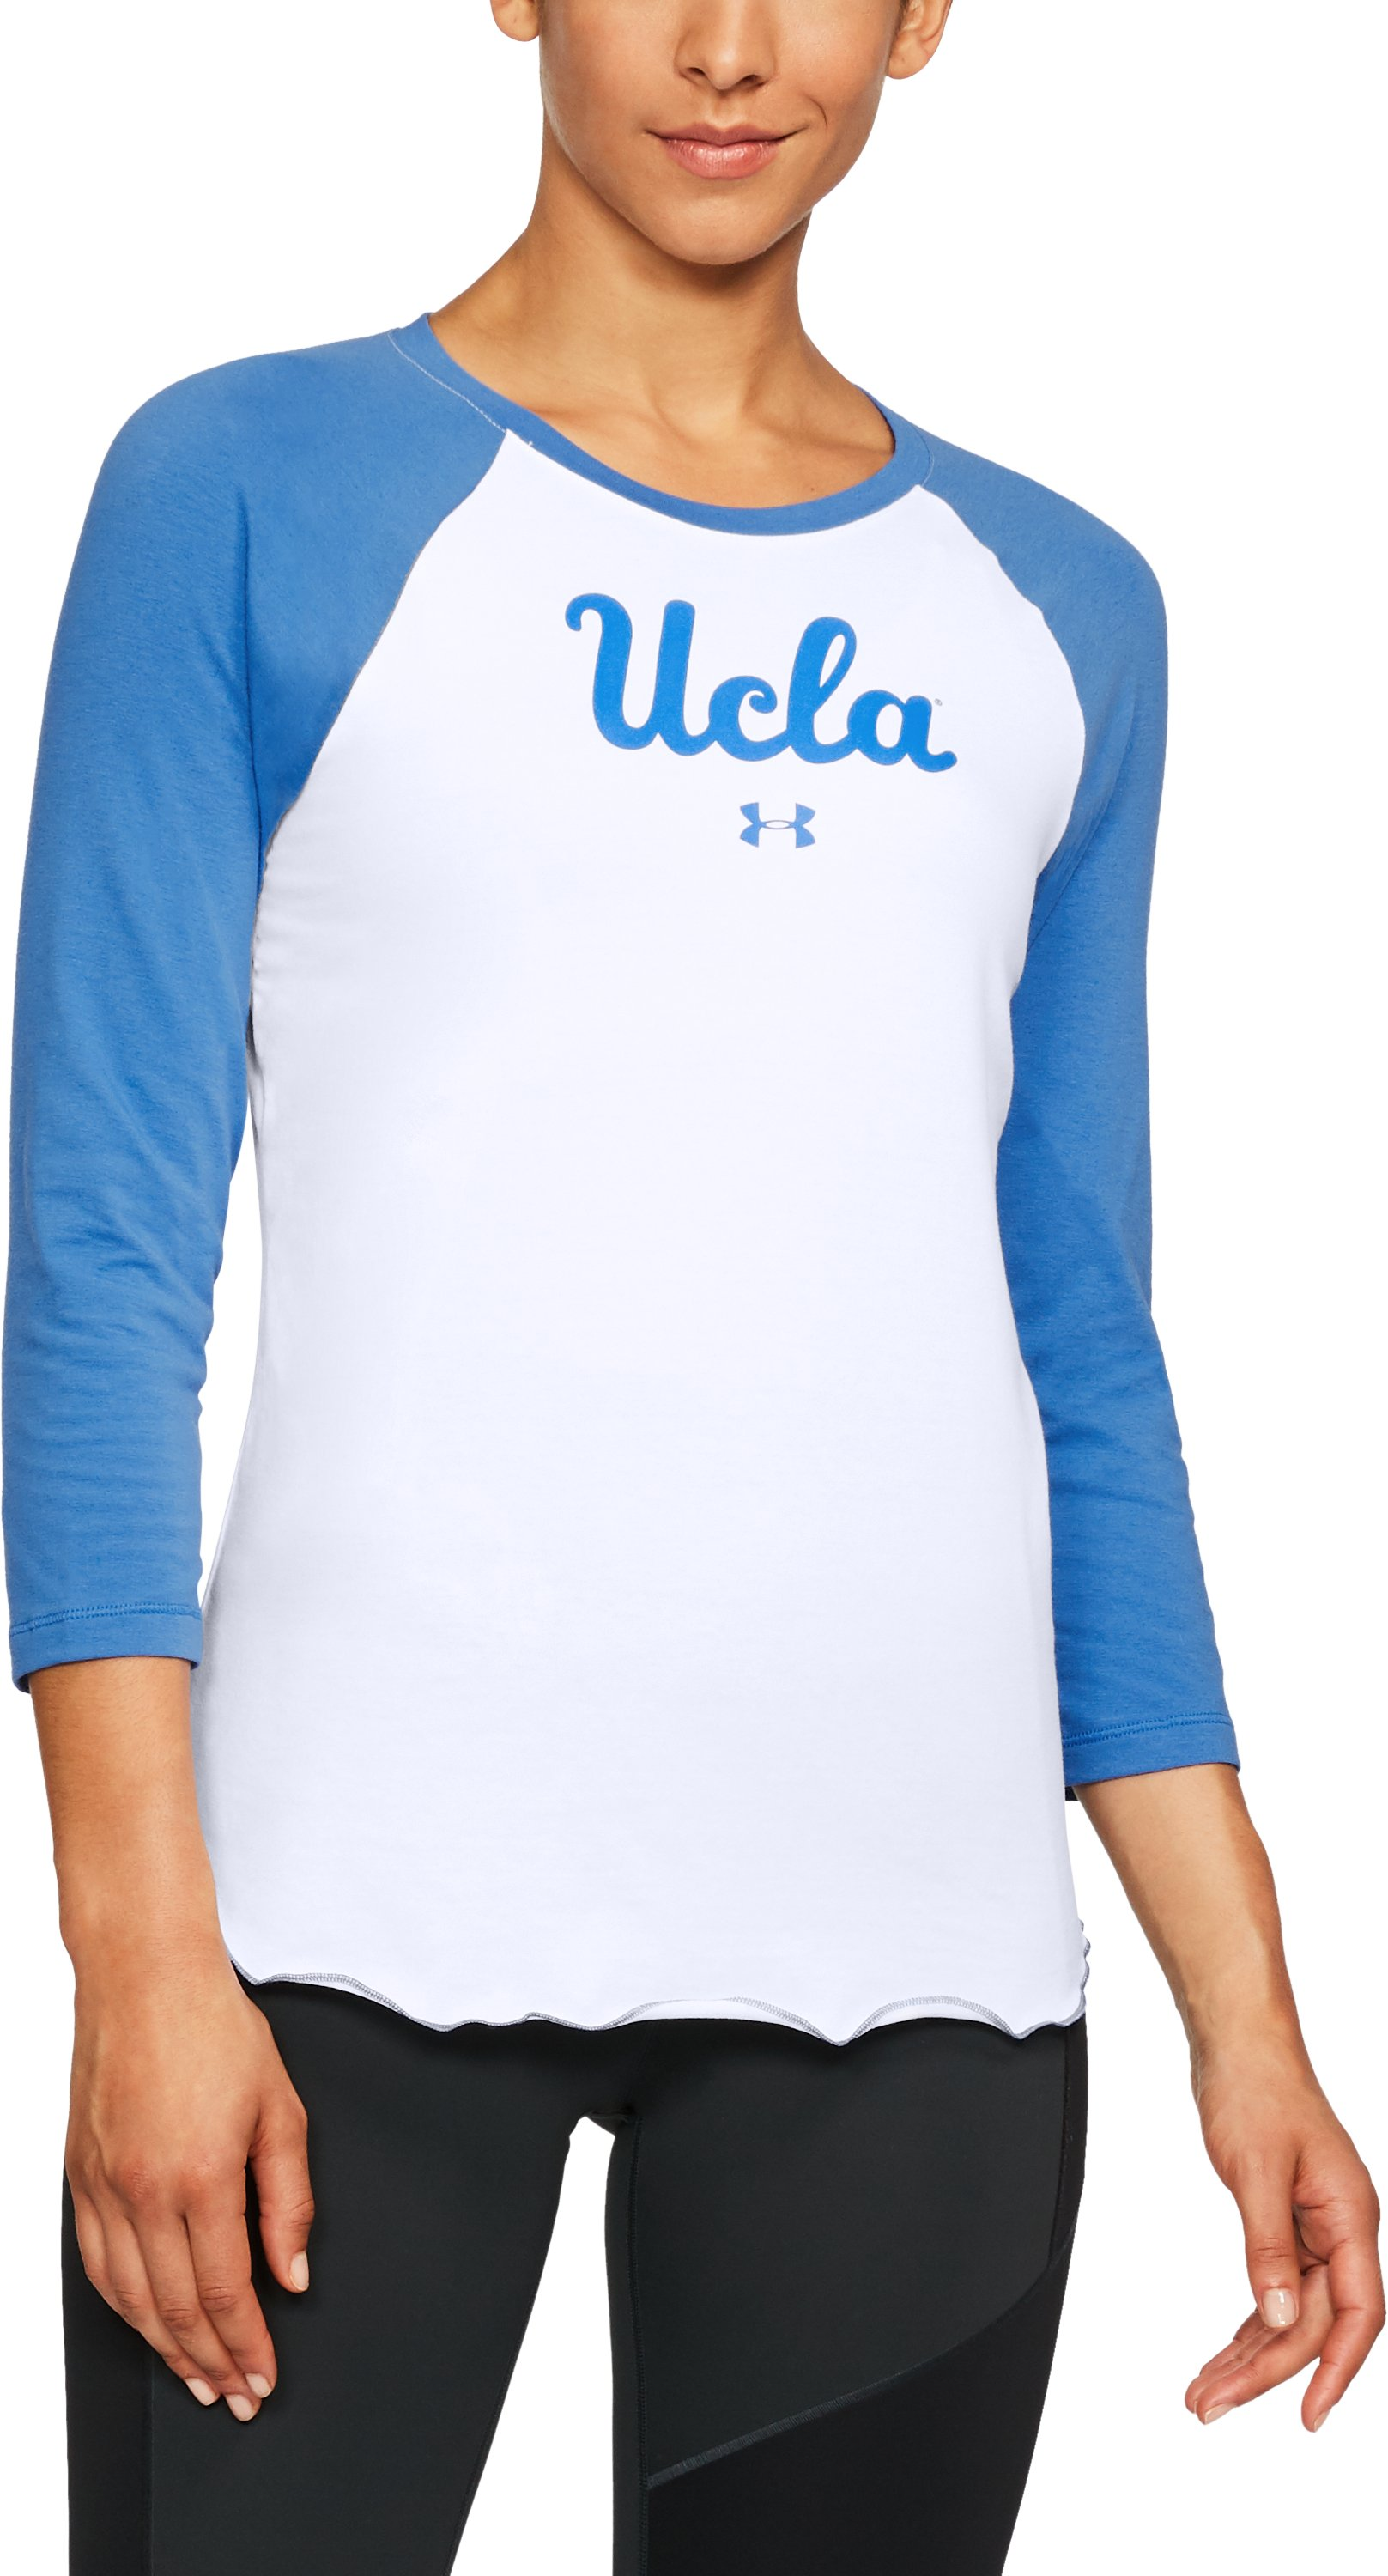 womens baseball tshirts Women's UCLA Baseball T-Shirt